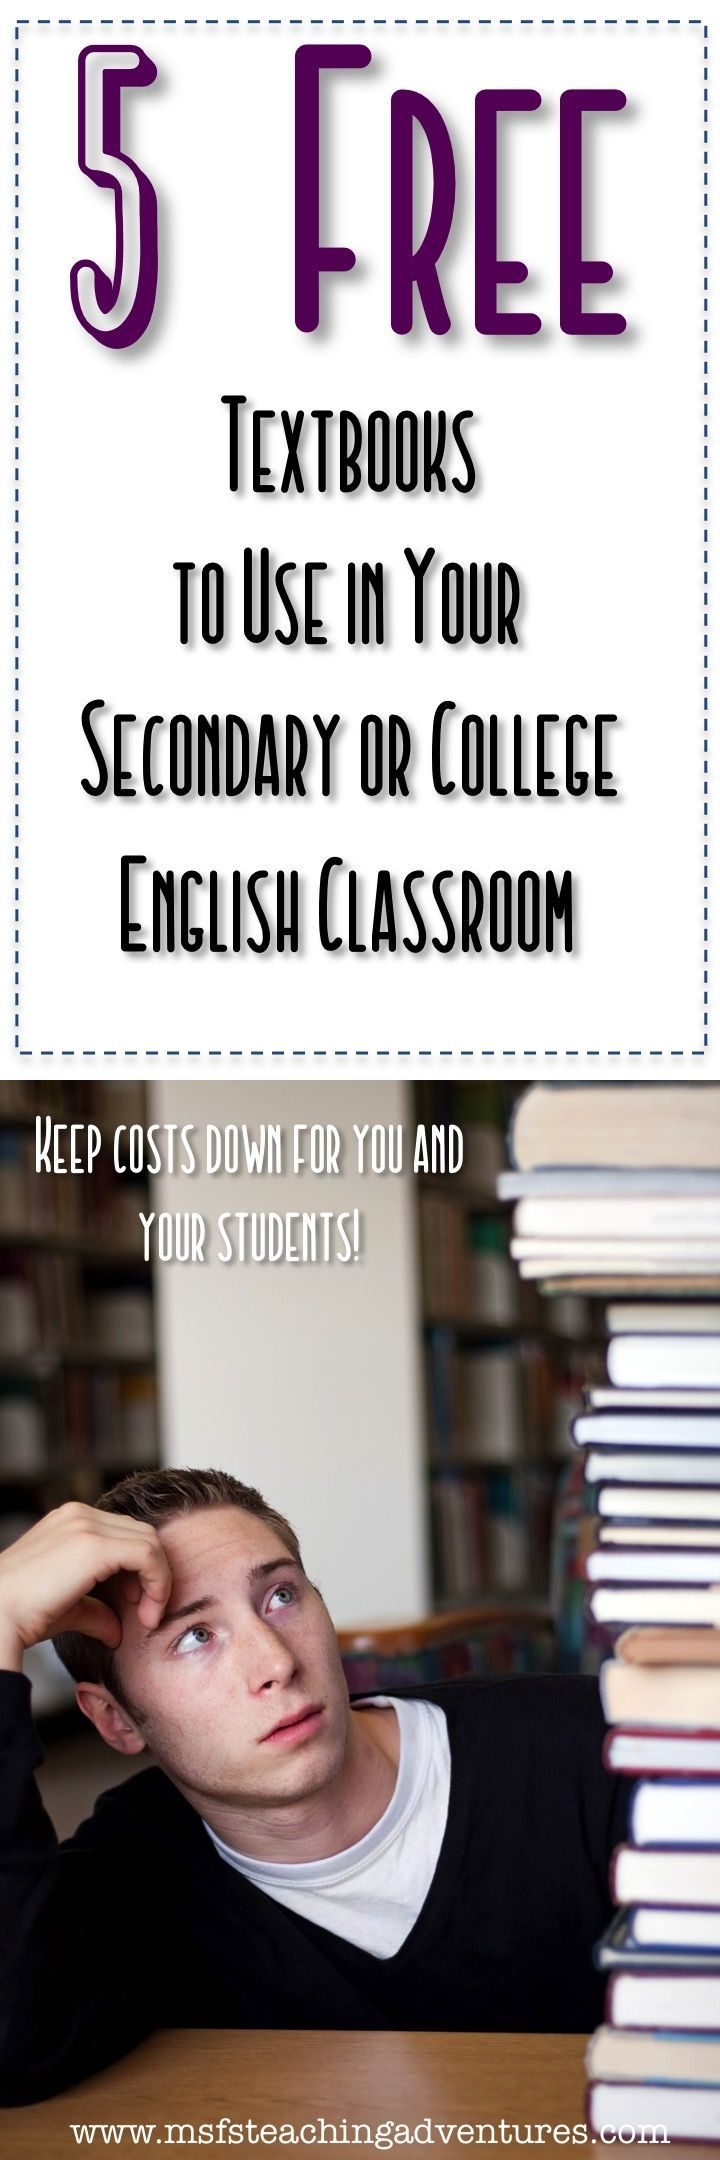 Free Textbooks For Secondary And College English Free Textbooks